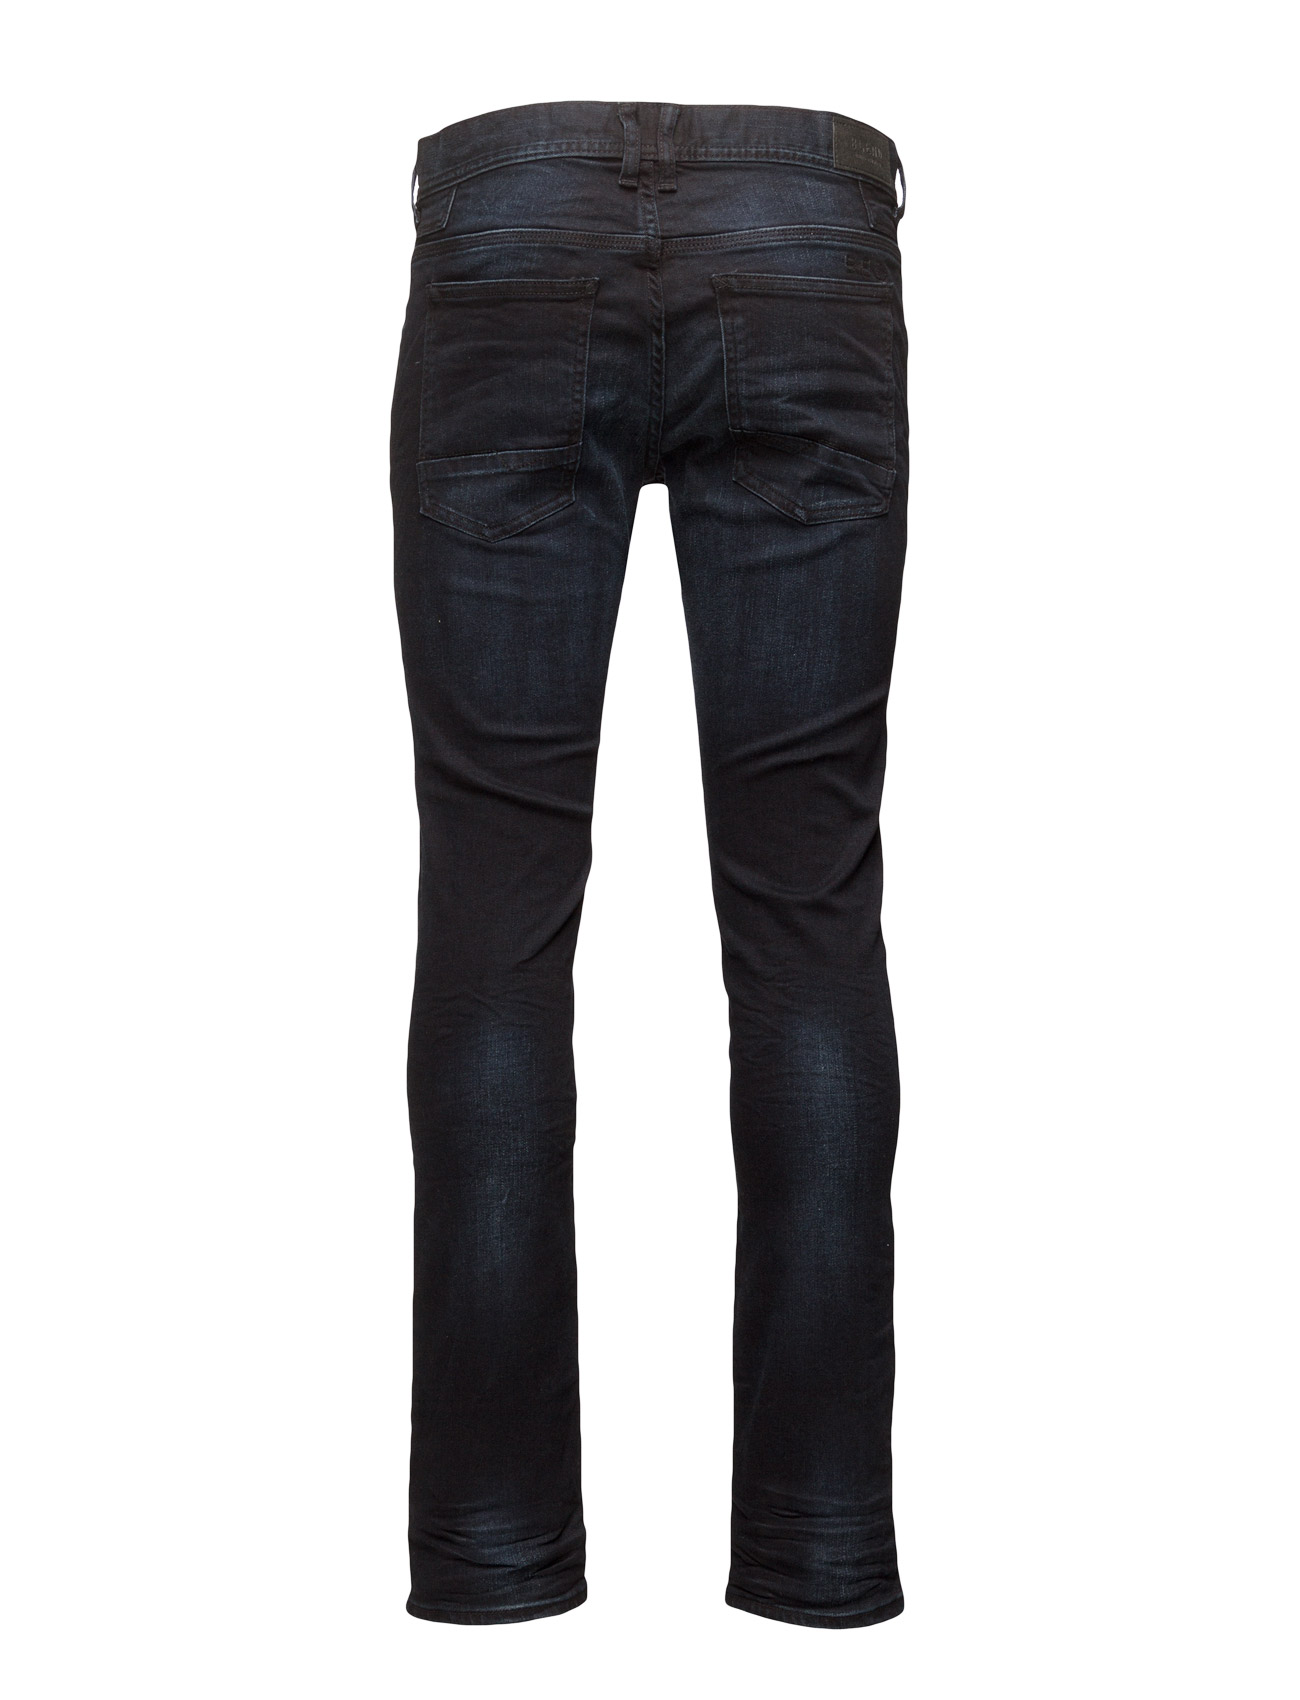 Image of Jeans - Noos (2790984339)